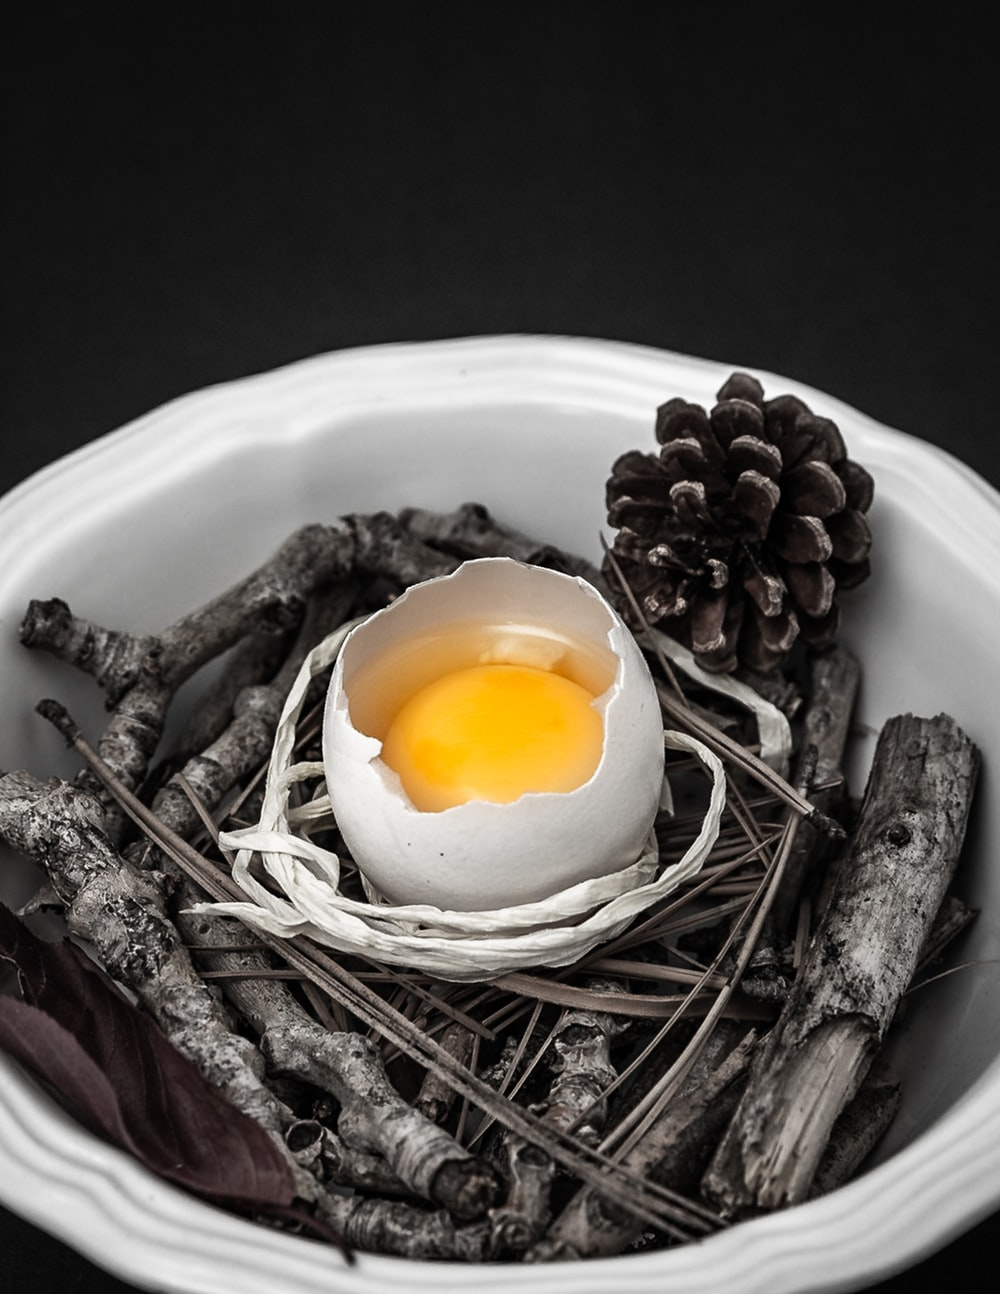 half-opened egg on bowl with tree twigs